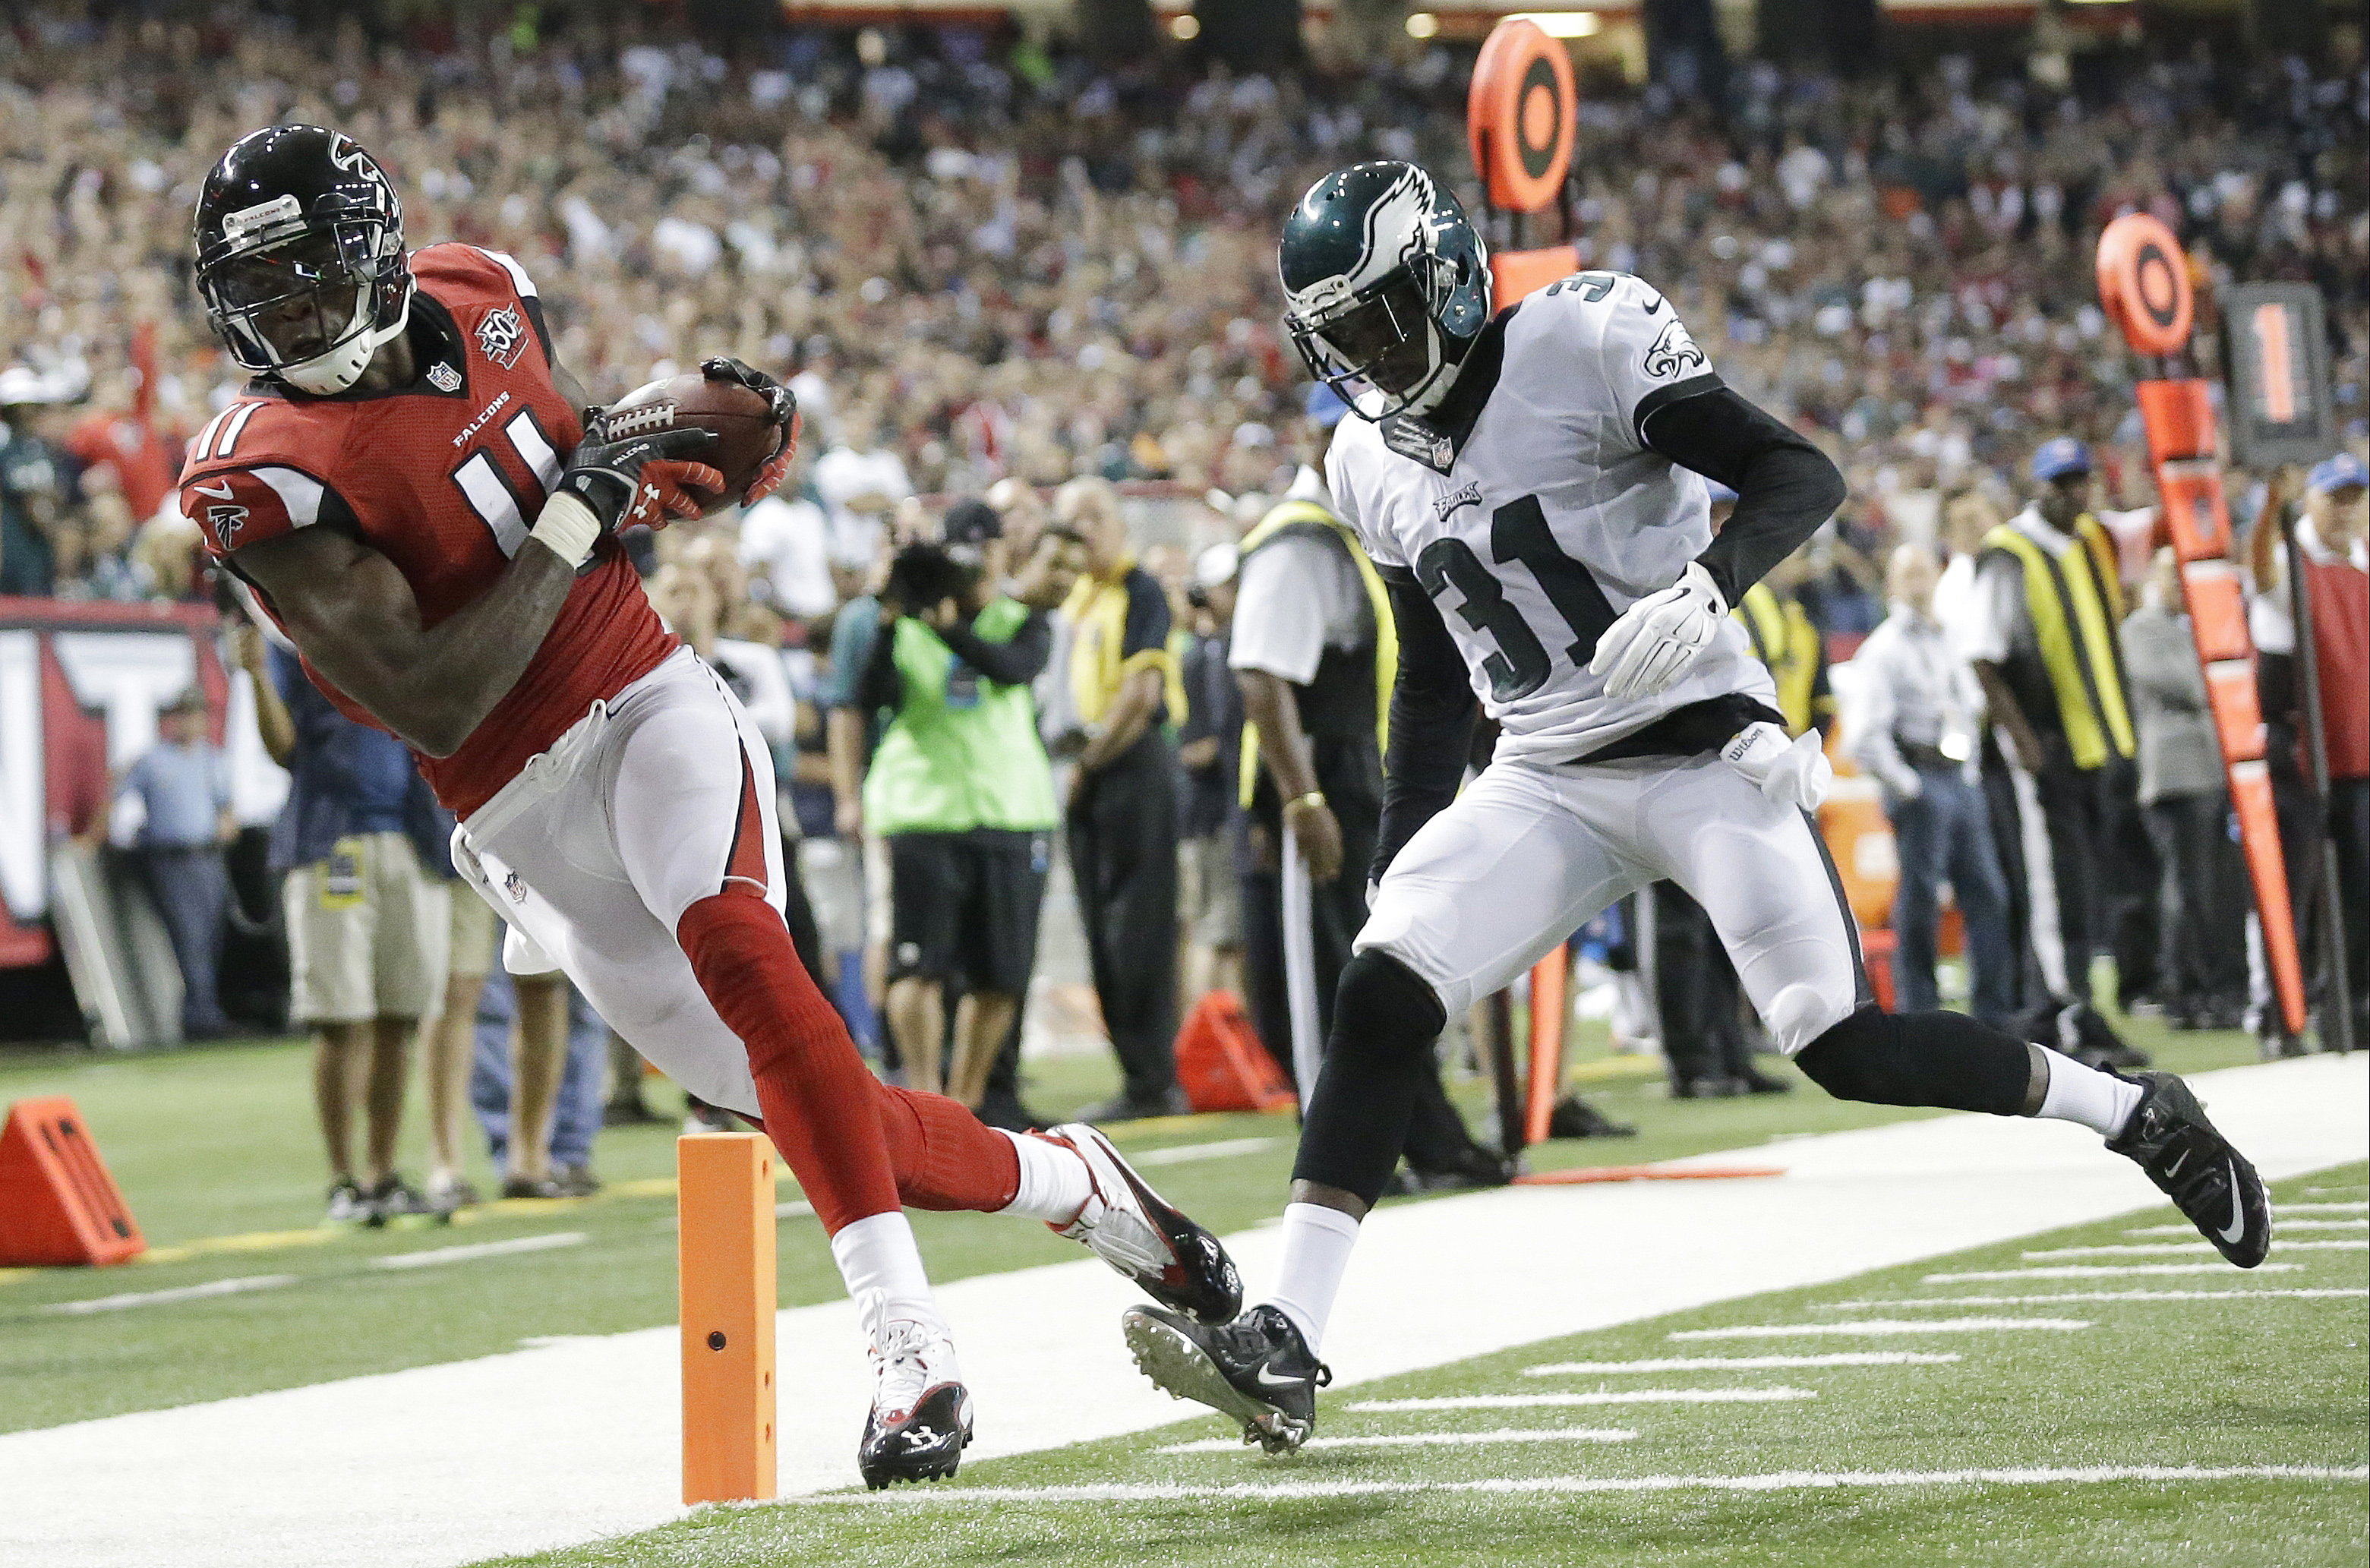 FILE - In this Sept. 14, 2015, file photo, Atlanta Falcons wide receiver Julio Jones (11) makes a touchdown catch against Philadelphia Eagles defensive back Byron Maxwell (31) during the first half of an NFL football game, in Atlanta. Julio Jones is on pa